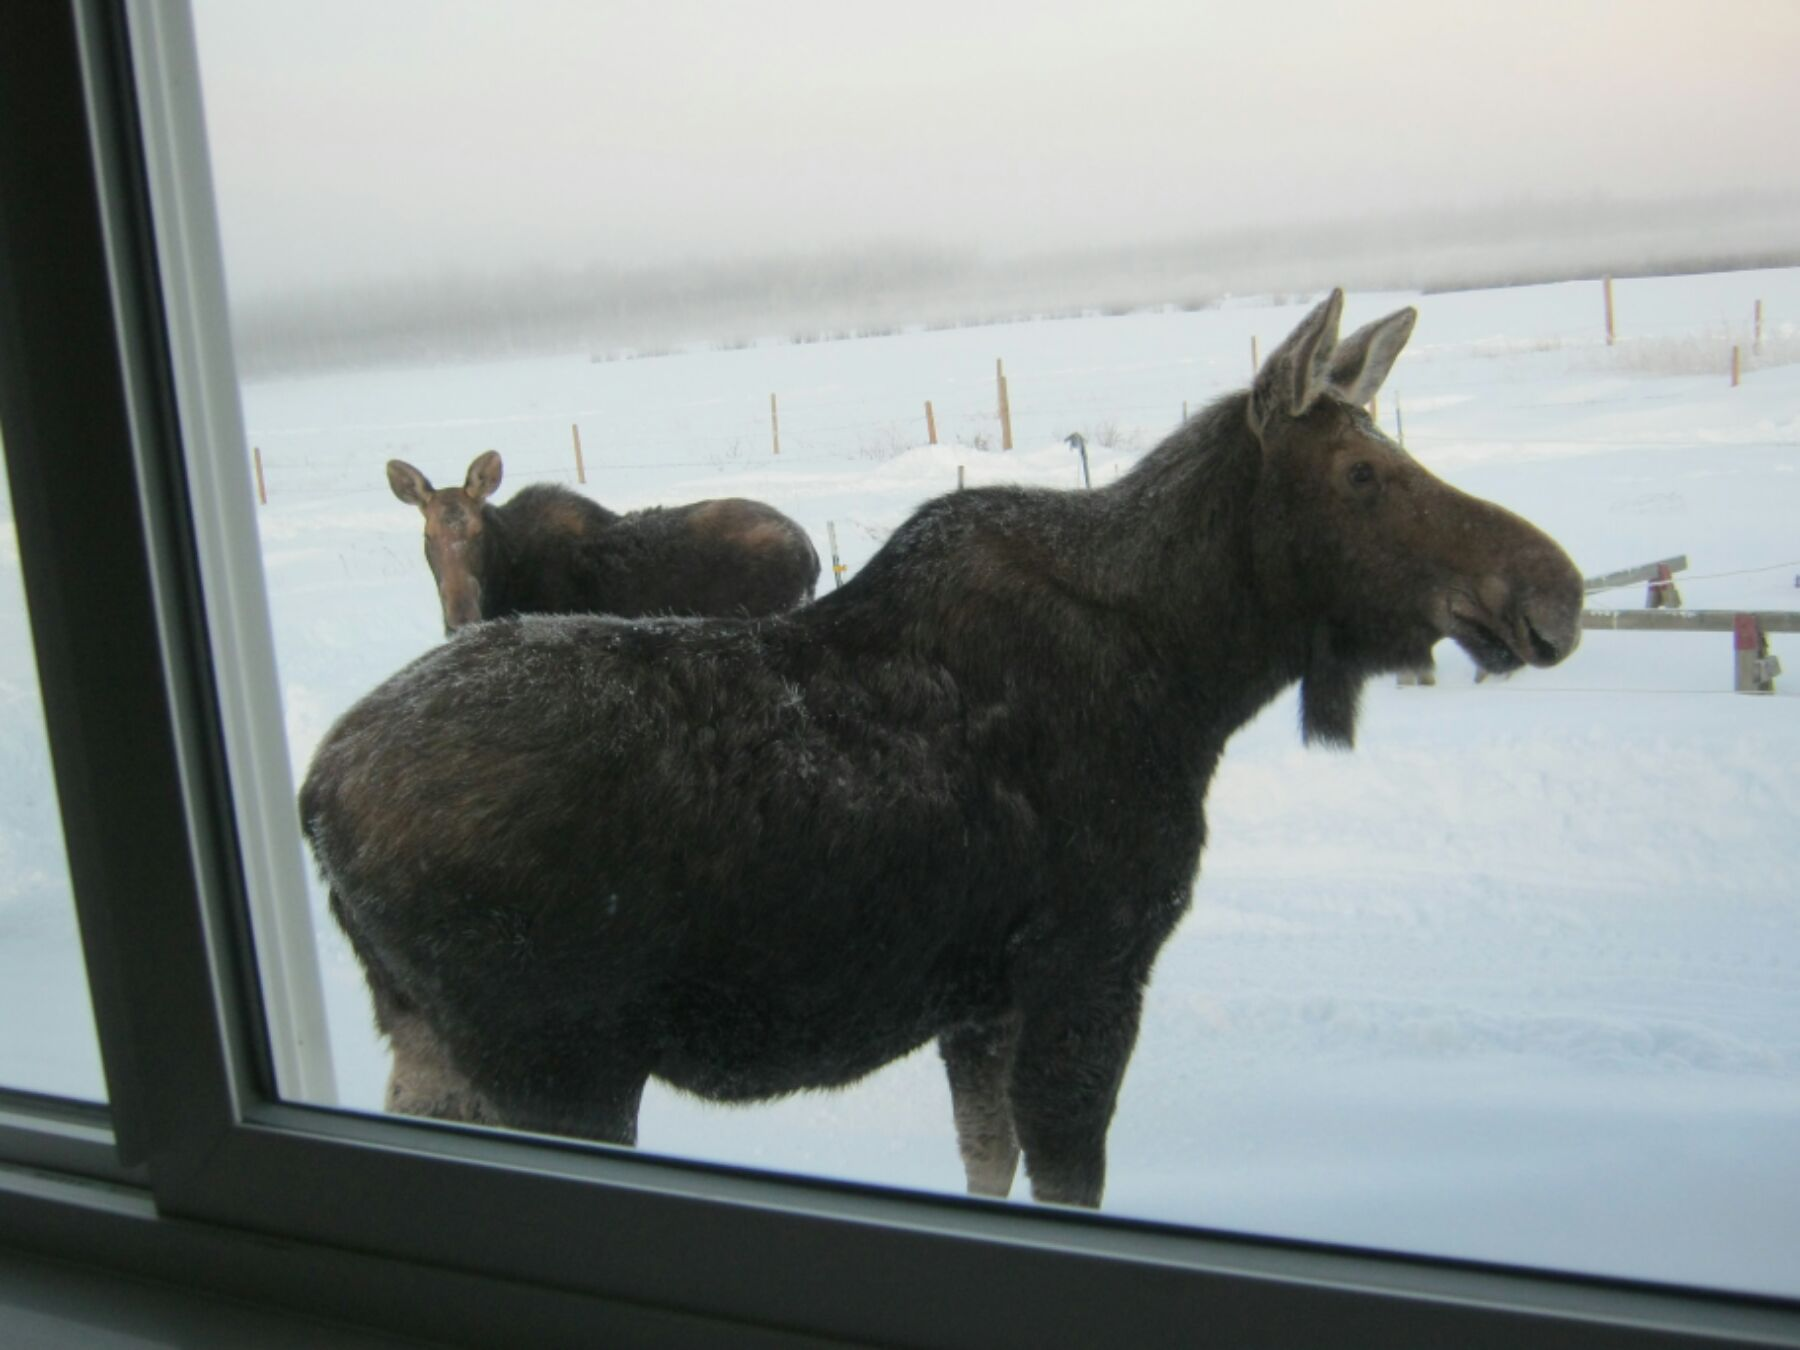 Two moose stand outside in the winter cold in Fort St. John